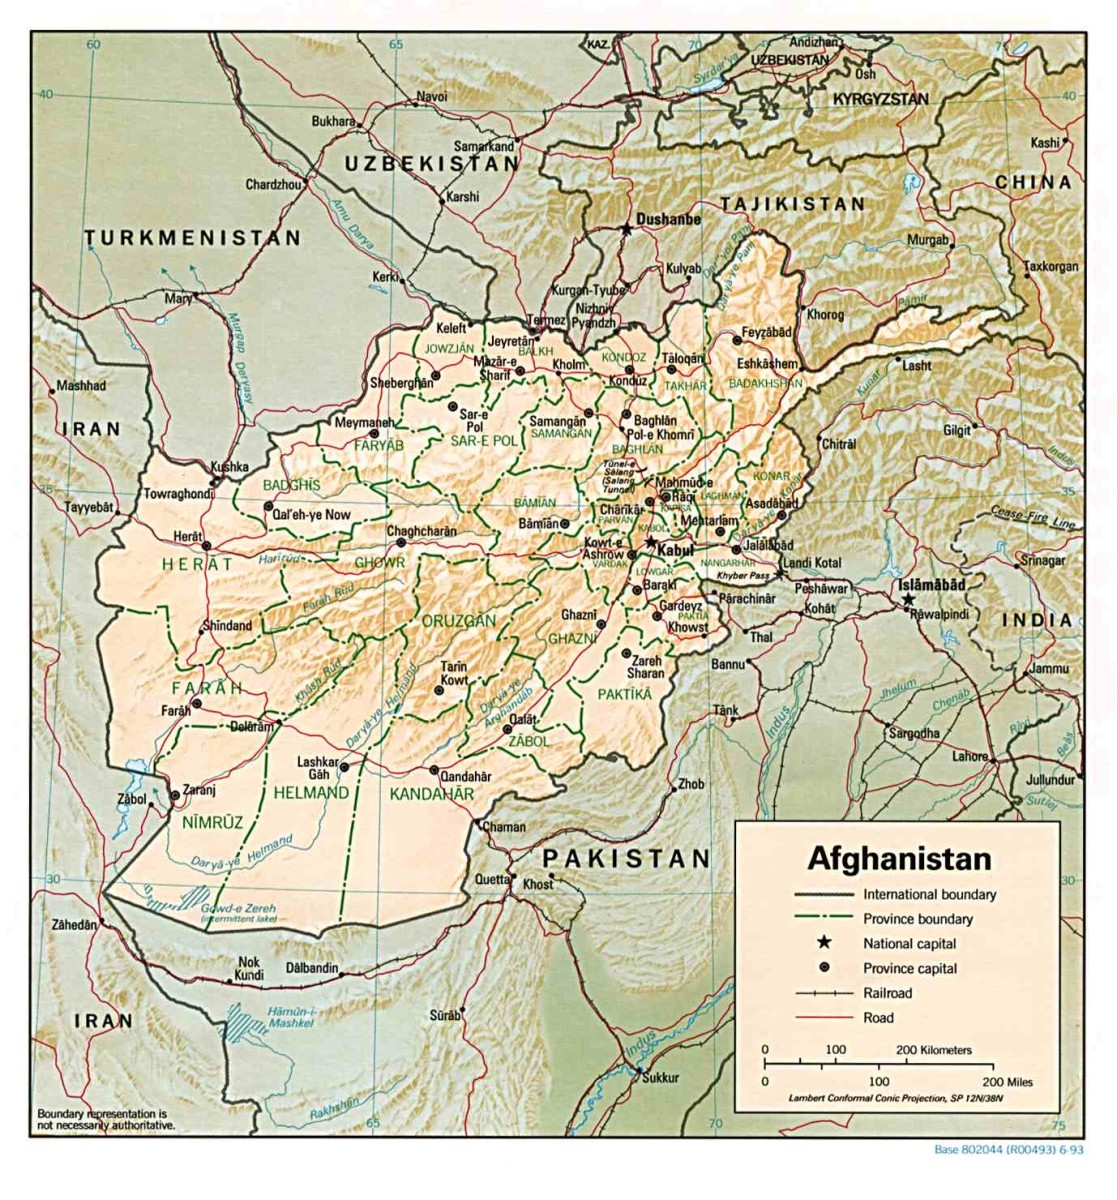 A detailed map of Afghanistan which follows the UTC + 4:30 time zone.